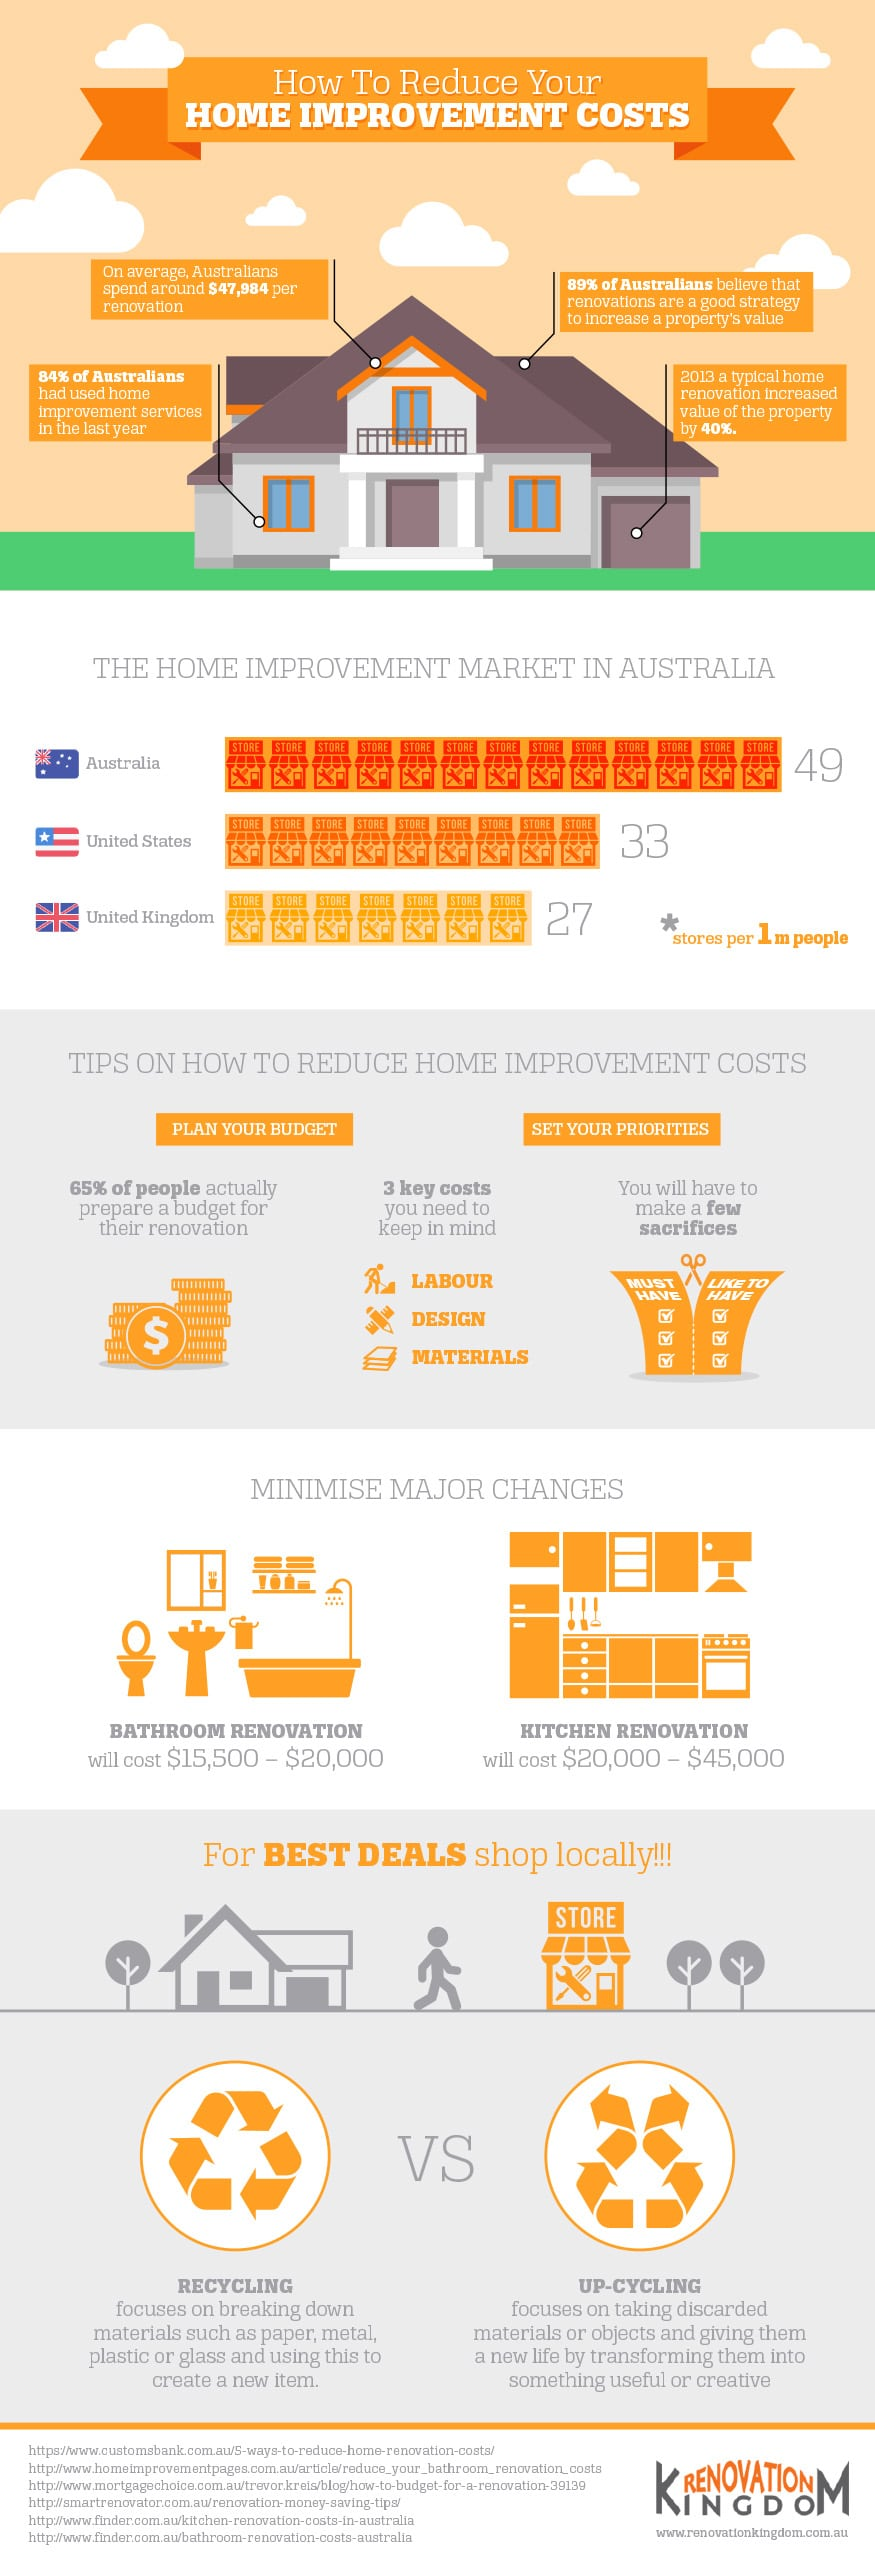 How To Reduce Your Home Improvement Costs [Infographic]